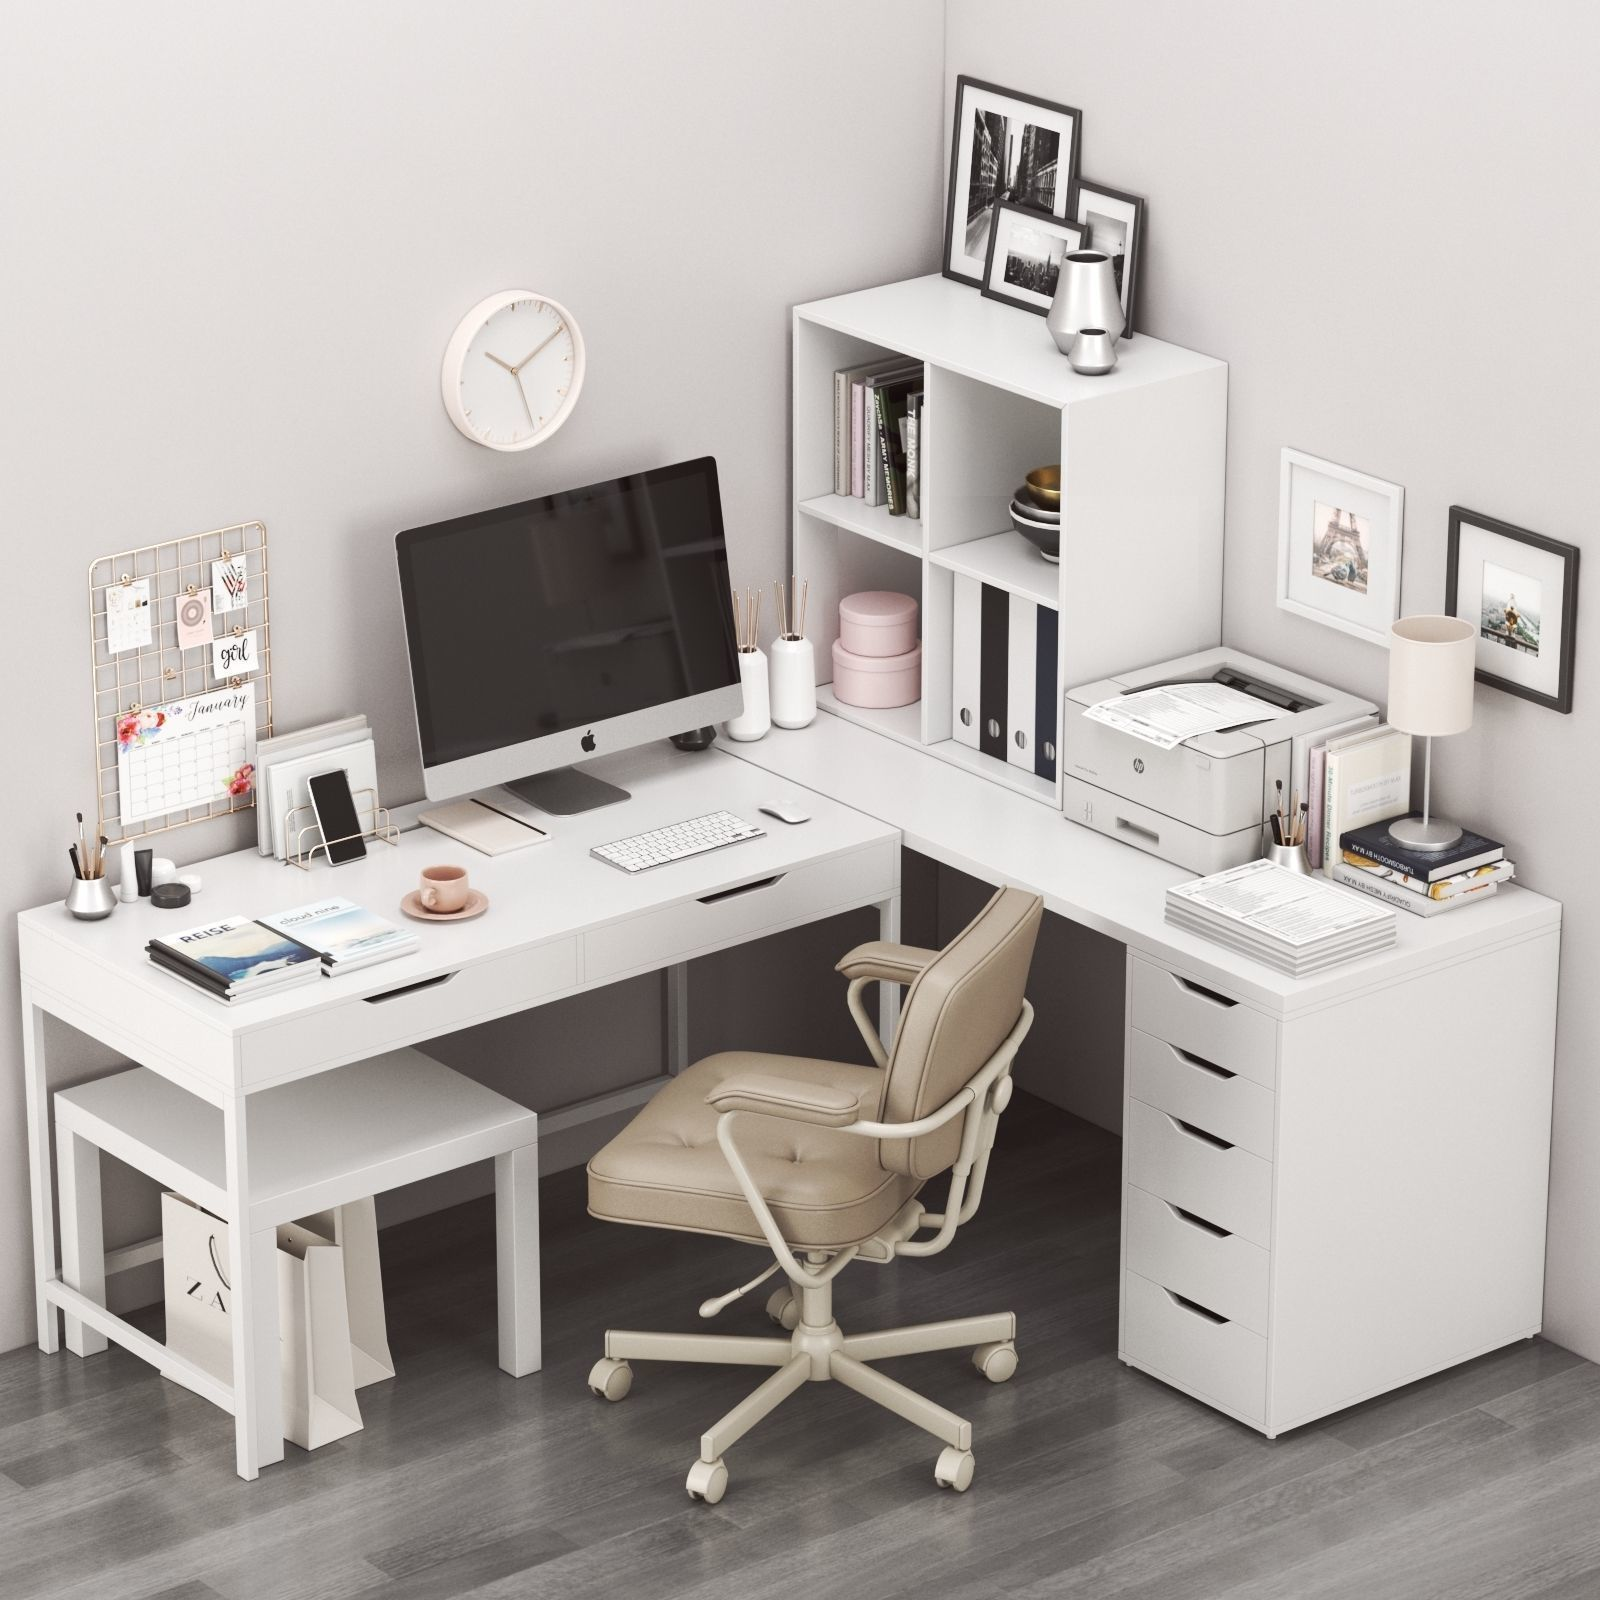 Corner workplace with ALEX table and ALEFJALL chair | 3D model